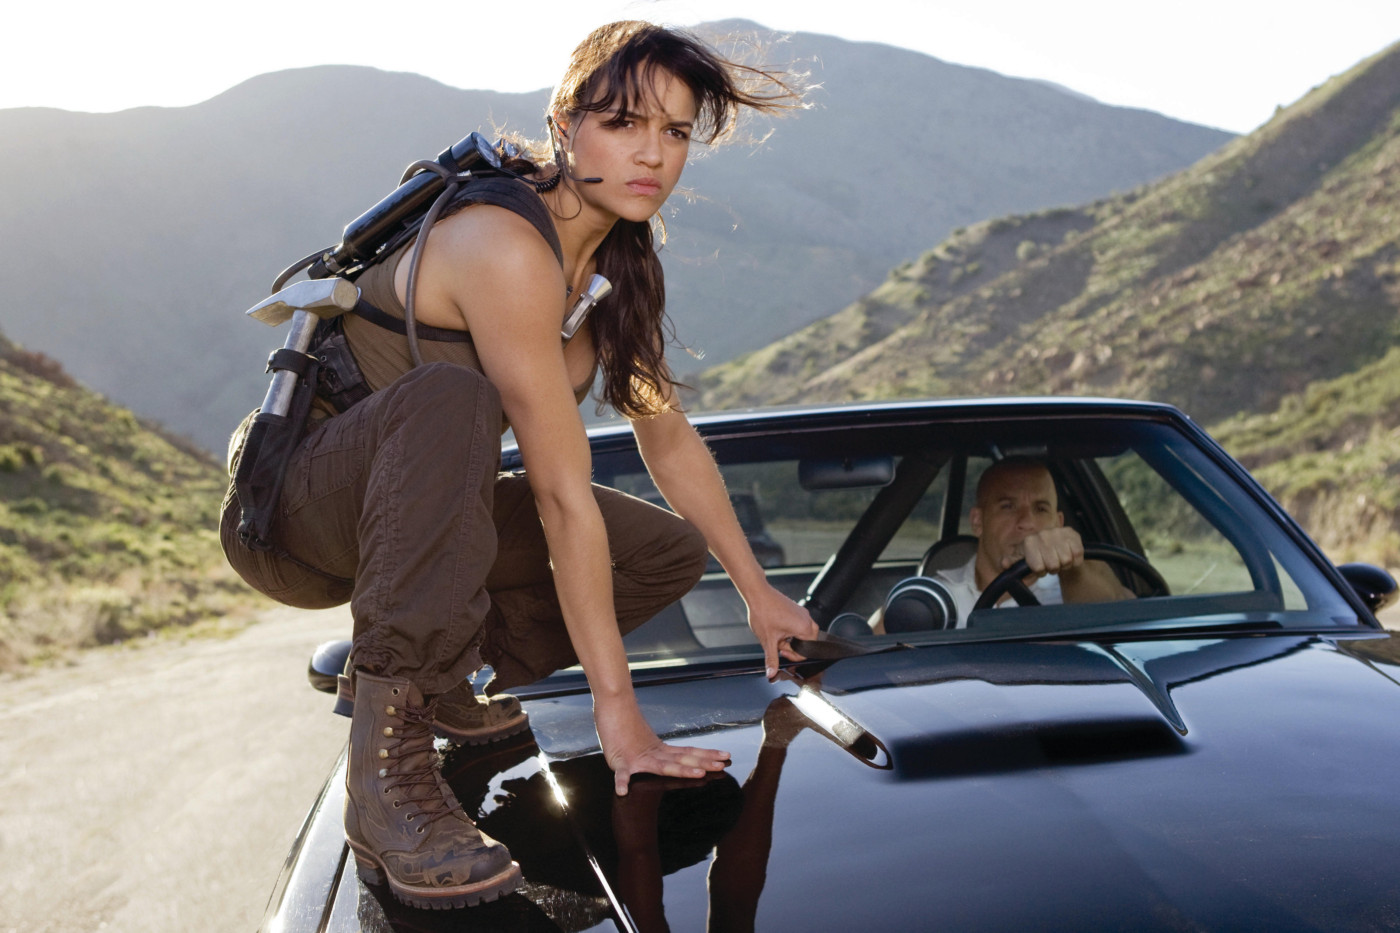 Michelle Rodriguez as Letty, Fast and Furious franchise